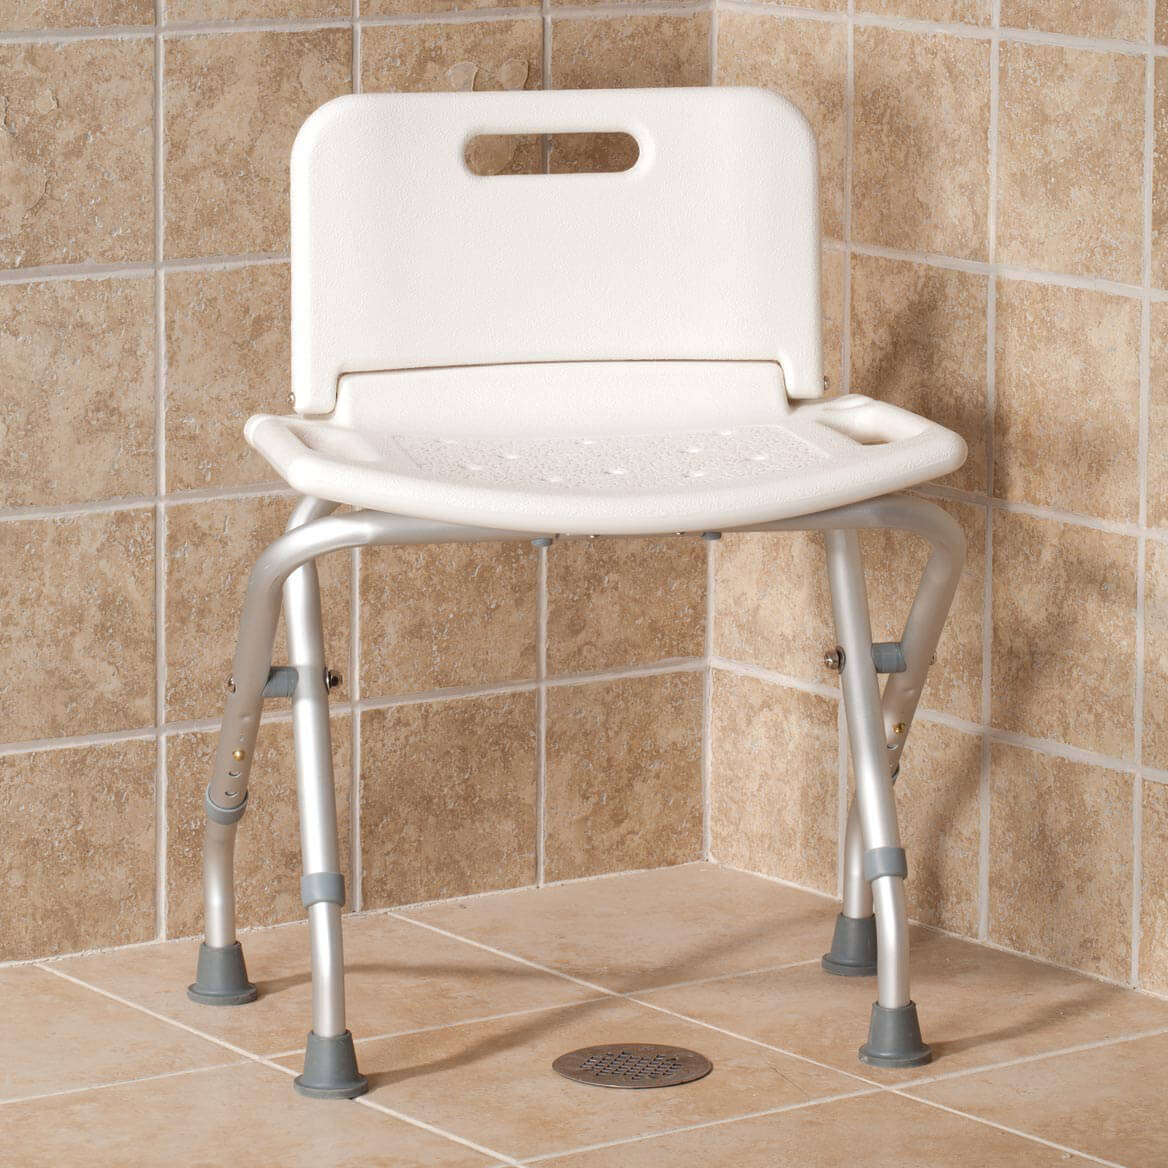 Shower & Toilet Accessories - Miles Kimball